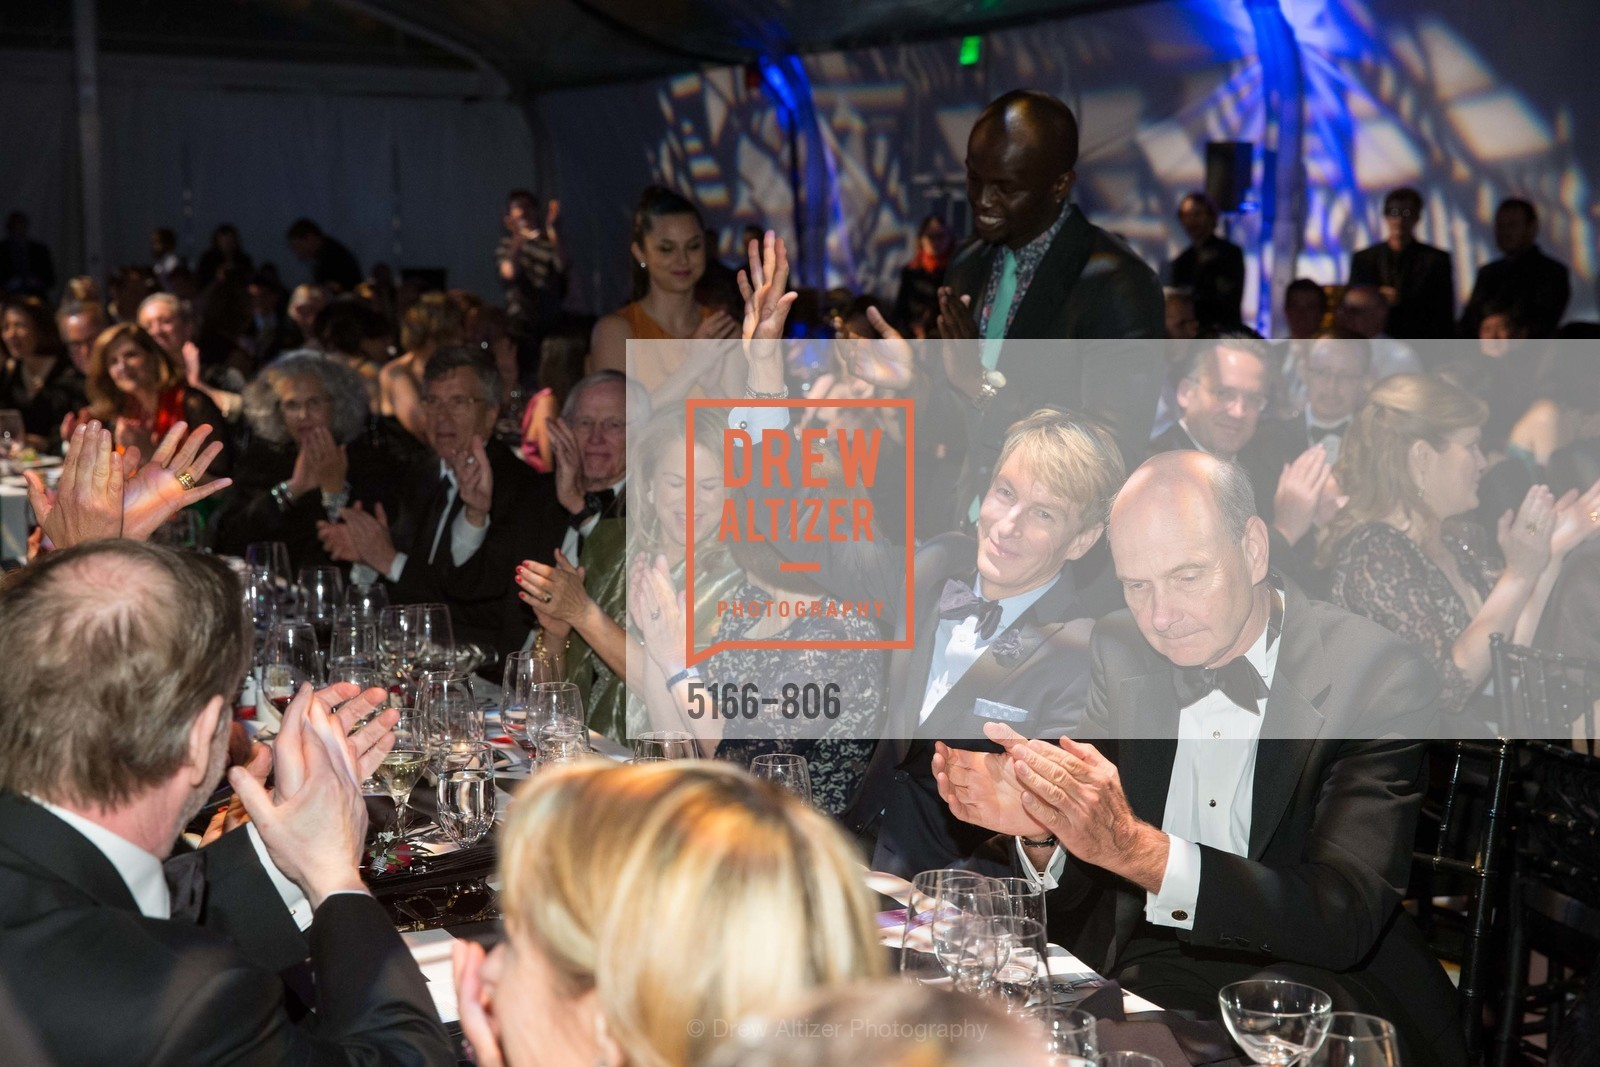 Jack Calhoun, Keith Geesling, A.C.T. Gala Come Get Stranded, US, April 26th, 2015,Drew Altizer, Drew Altizer Photography, full-service agency, private events, San Francisco photographer, photographer california